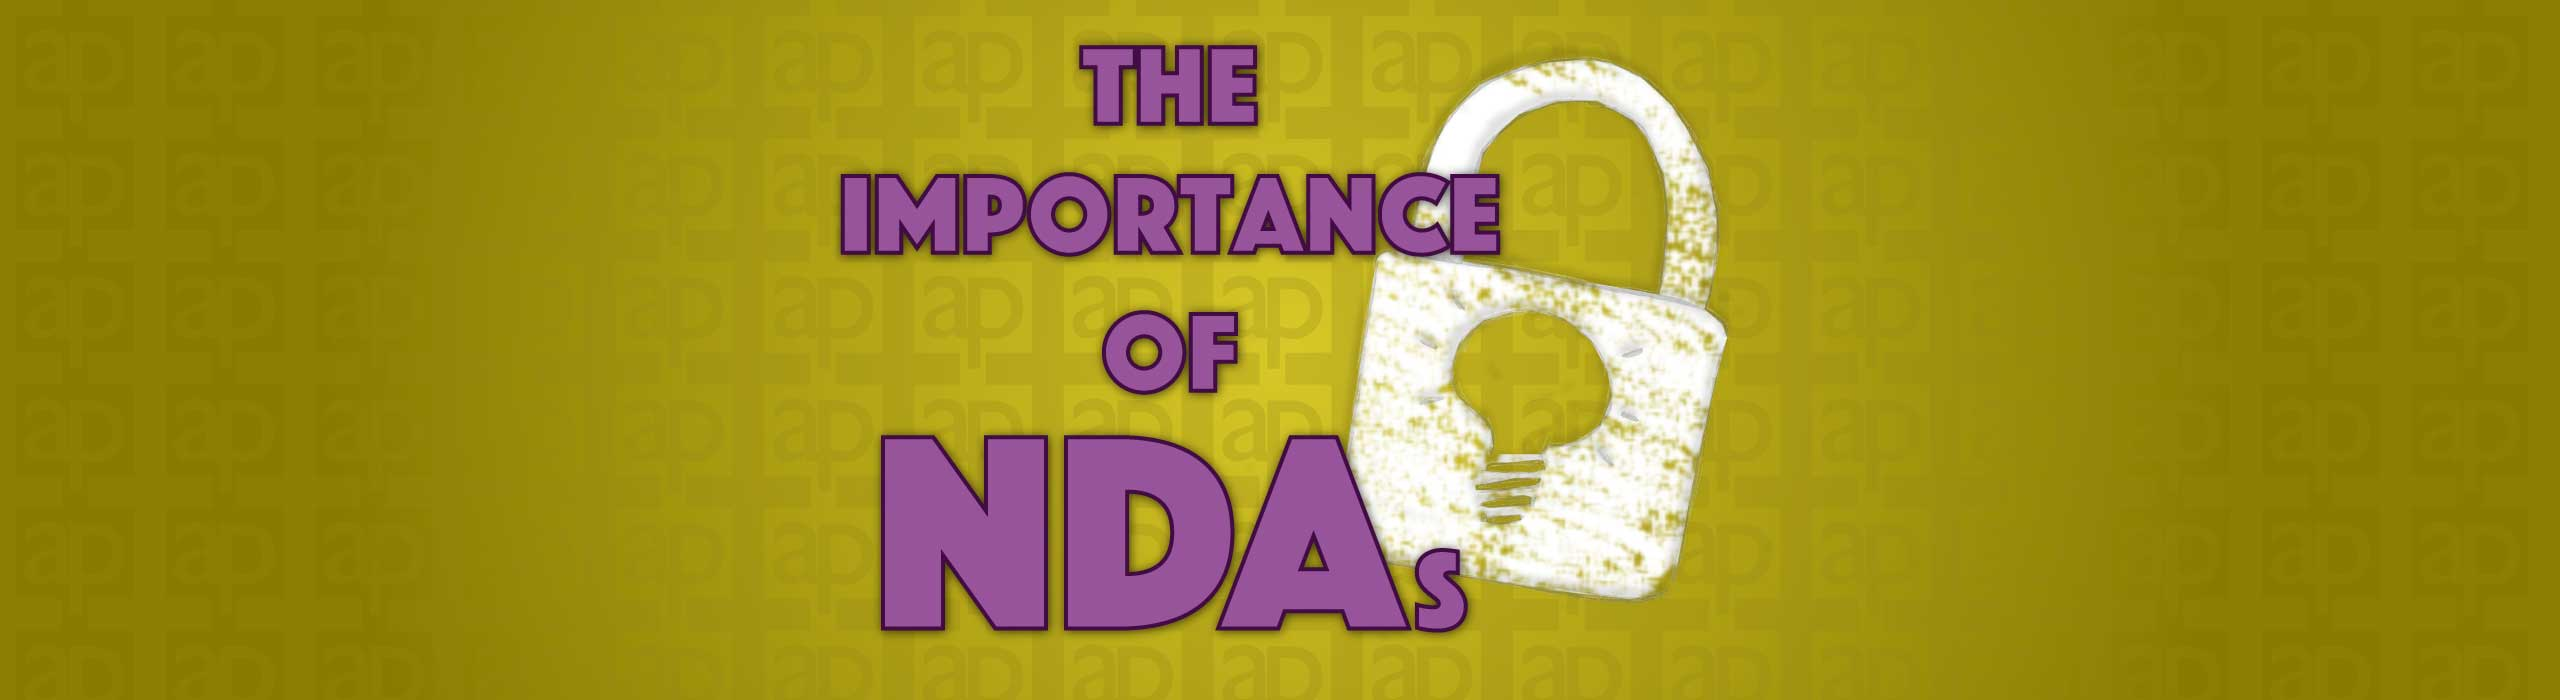 The Importance Of An Nda Or Non Disclosure Agreement